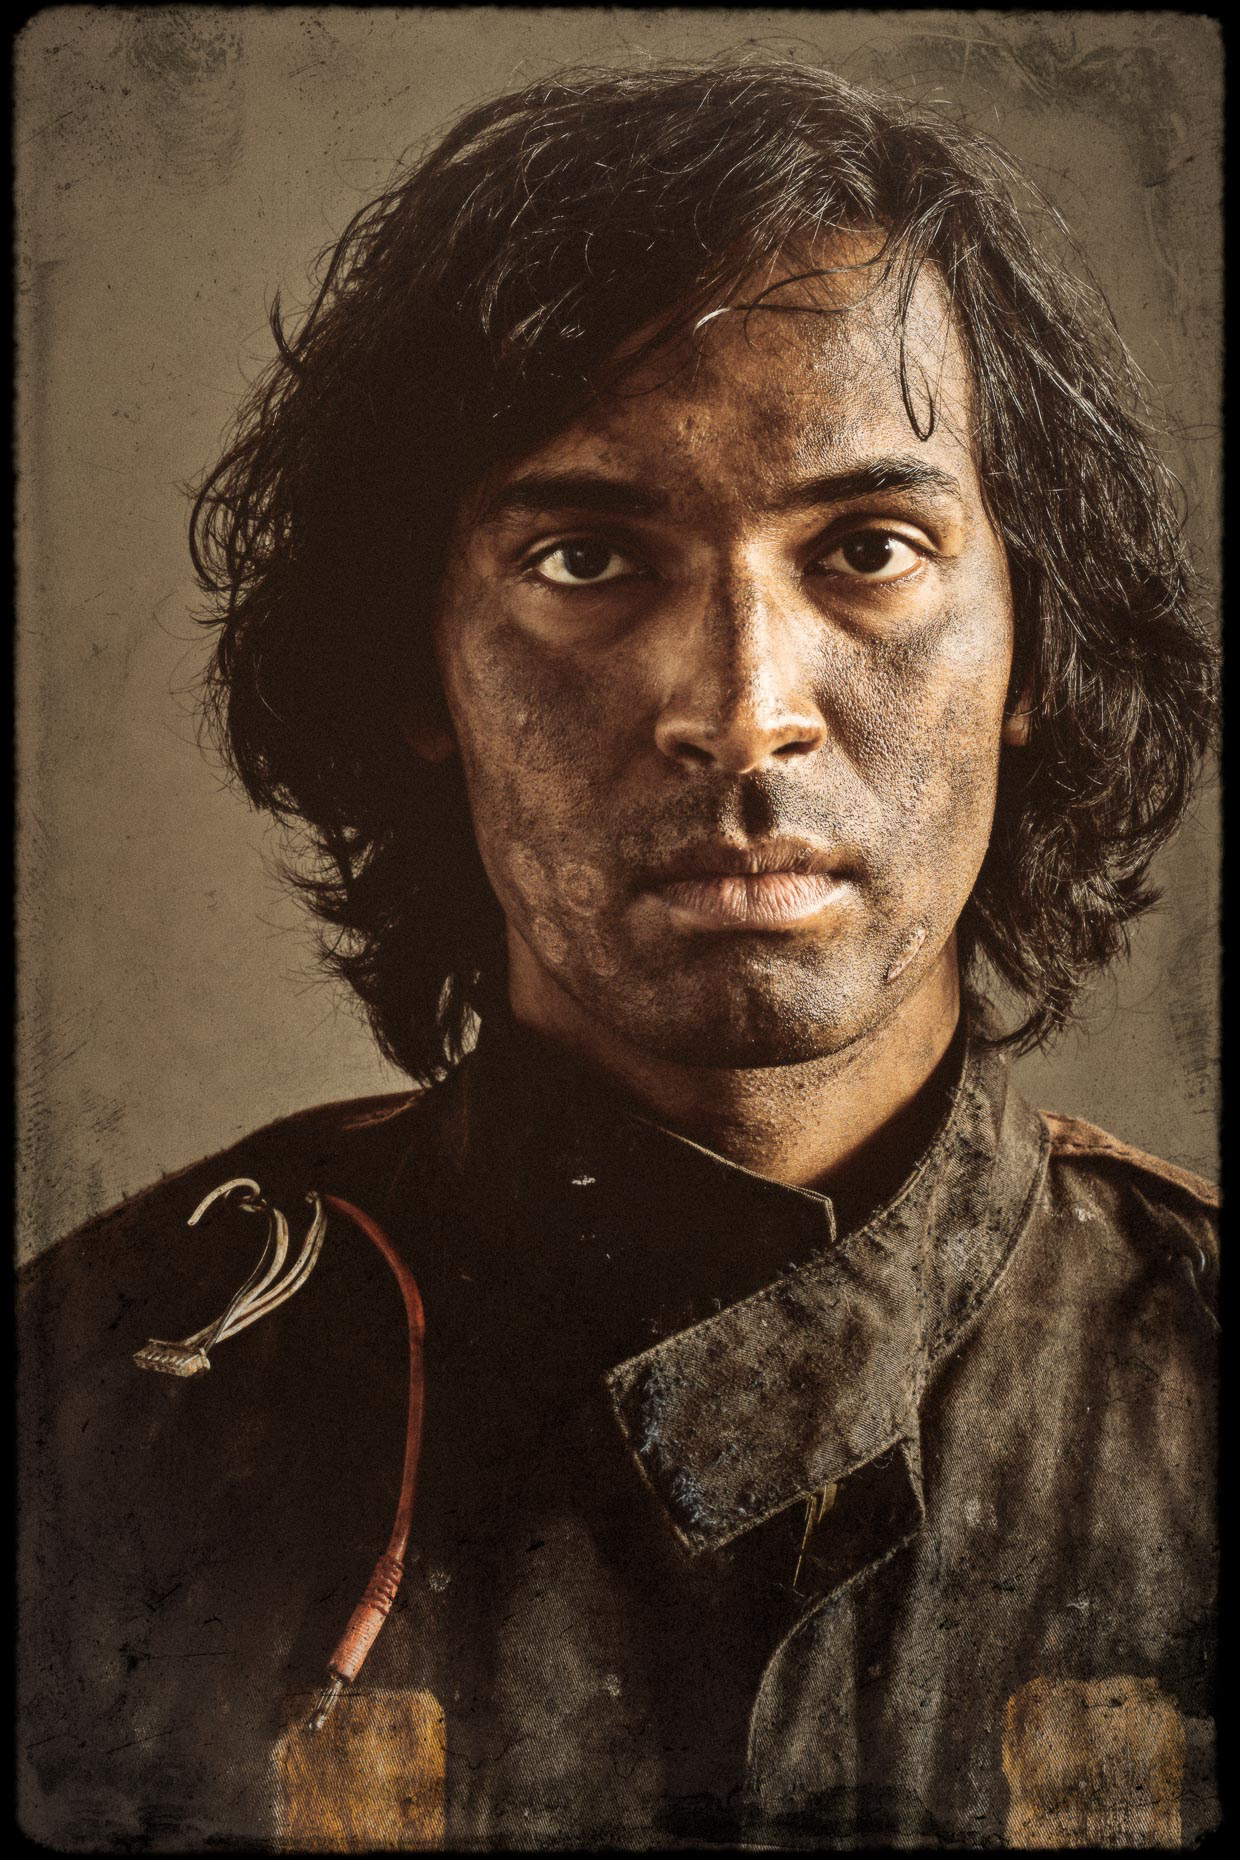 Character Portrait of actor Amitesh Prasad as Fourteen, one of 9 main characters. Introducing the apocalyptic world of the Bad Choices Project, a cinematic visual screenplay and personal project by Andy Batt.